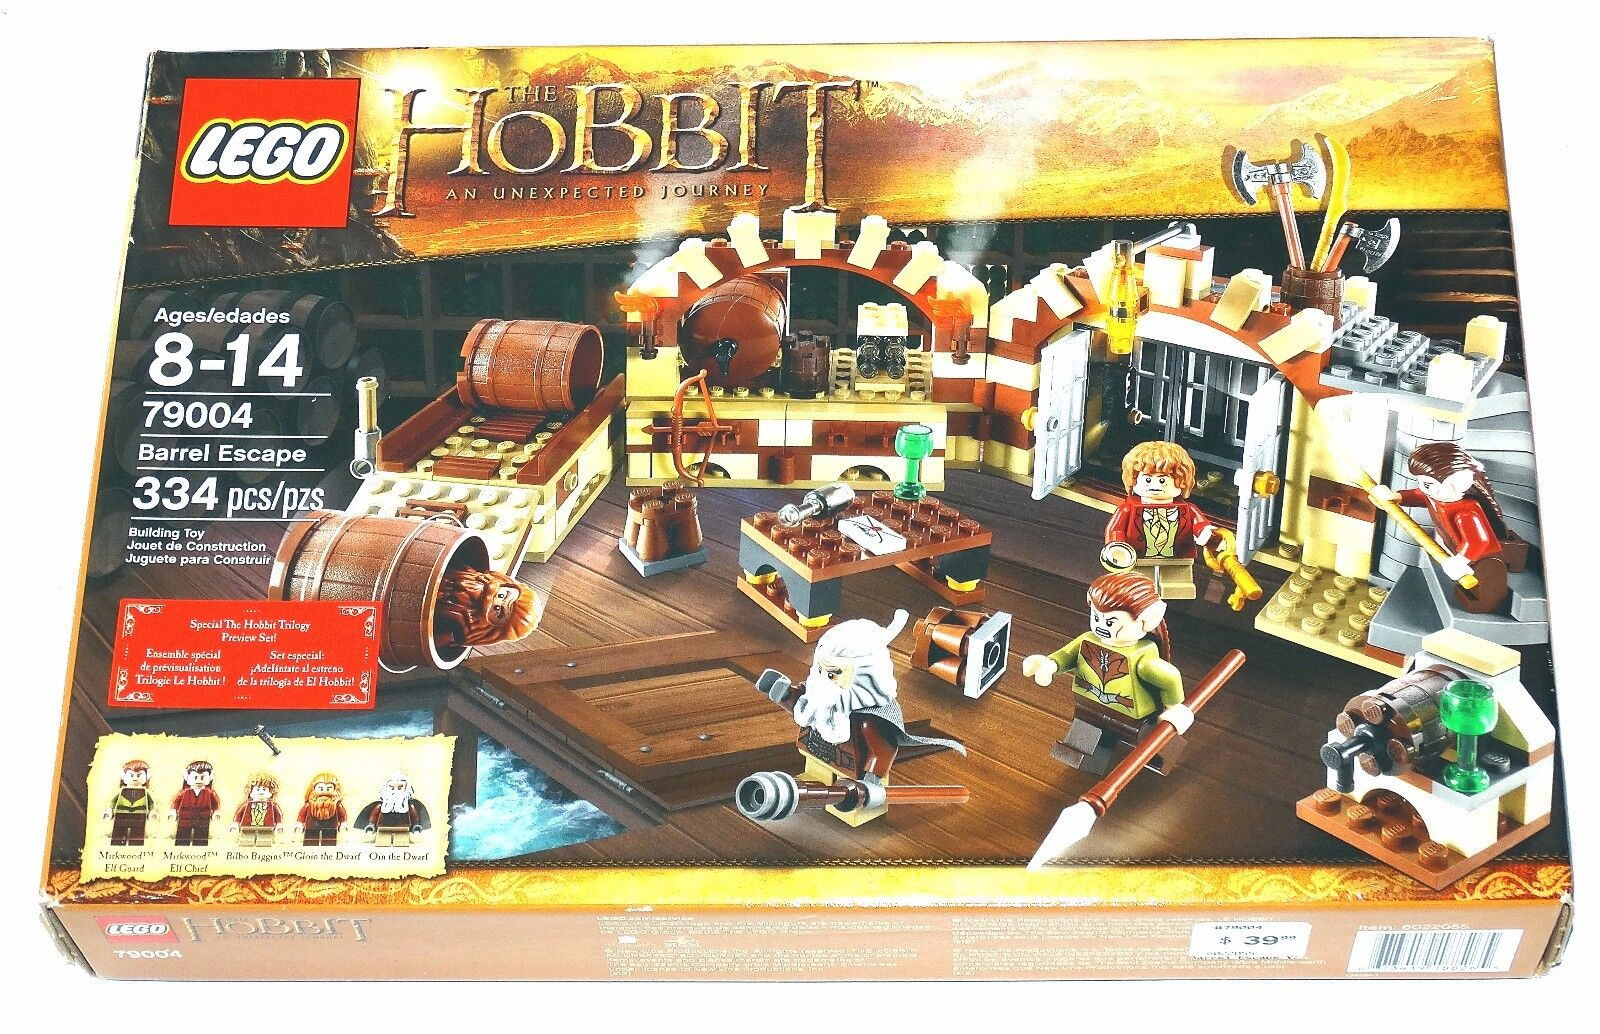 Lego 79004 The Hobbit Barrel Escape 2012 Factory Sealed Mint in Sealed Box